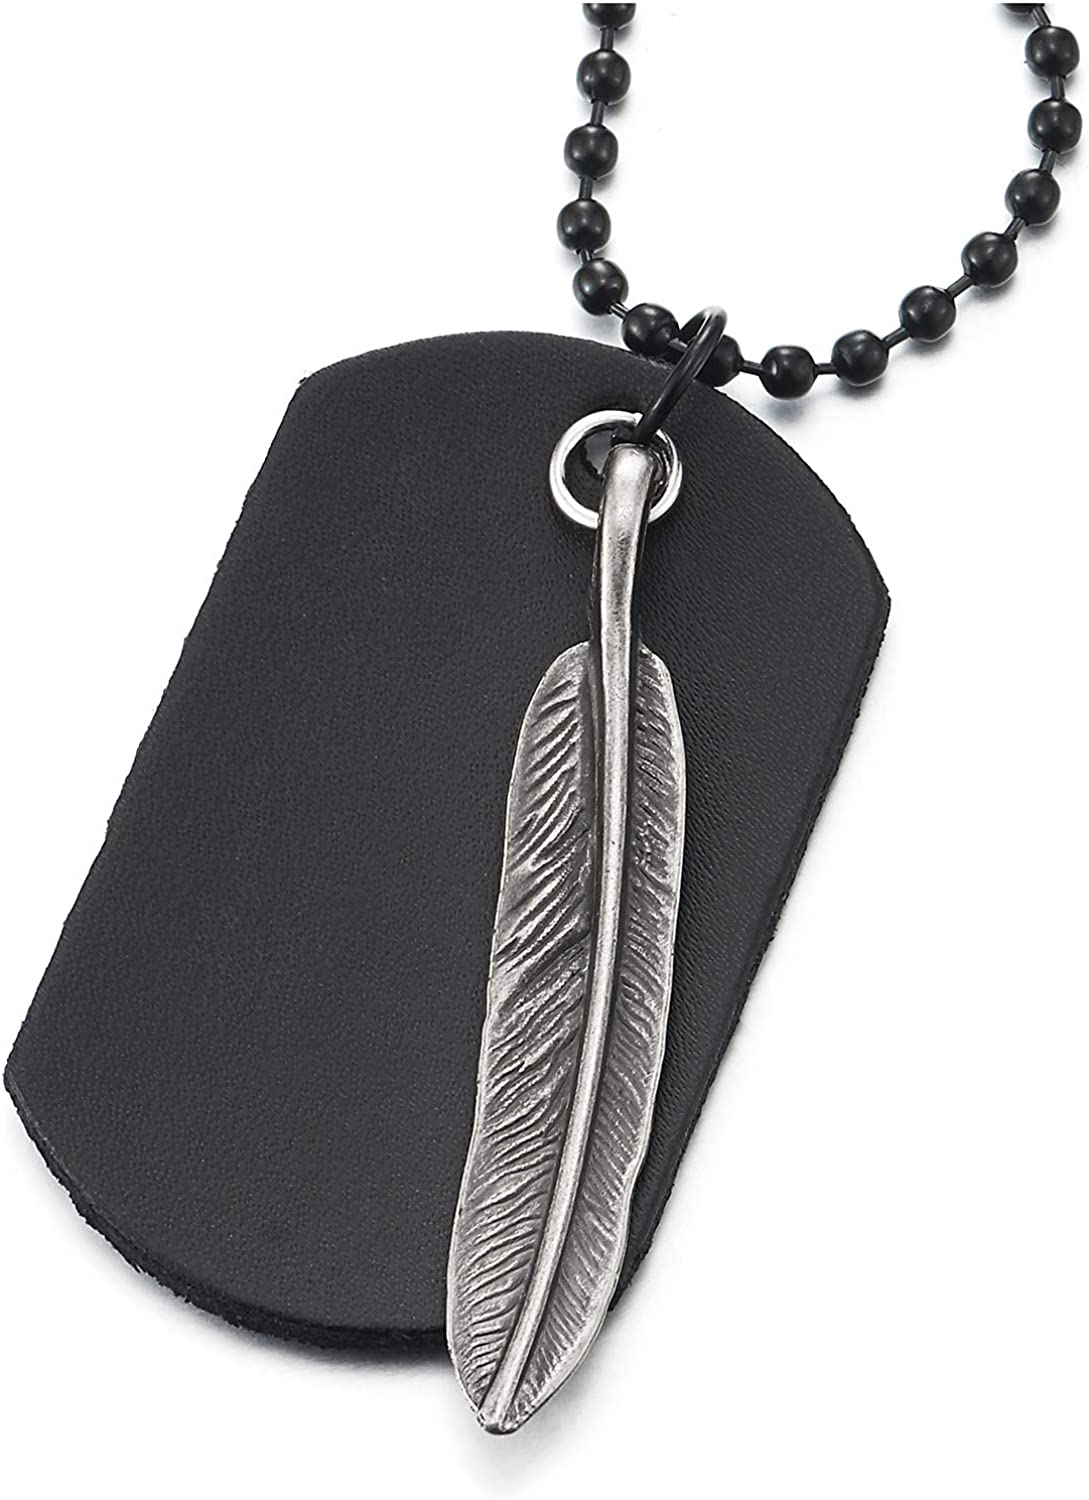 Mens Women Retro Style Metal Feather and Leather Dog Tag Pendant Necklace with 26 Inches Ball Chain